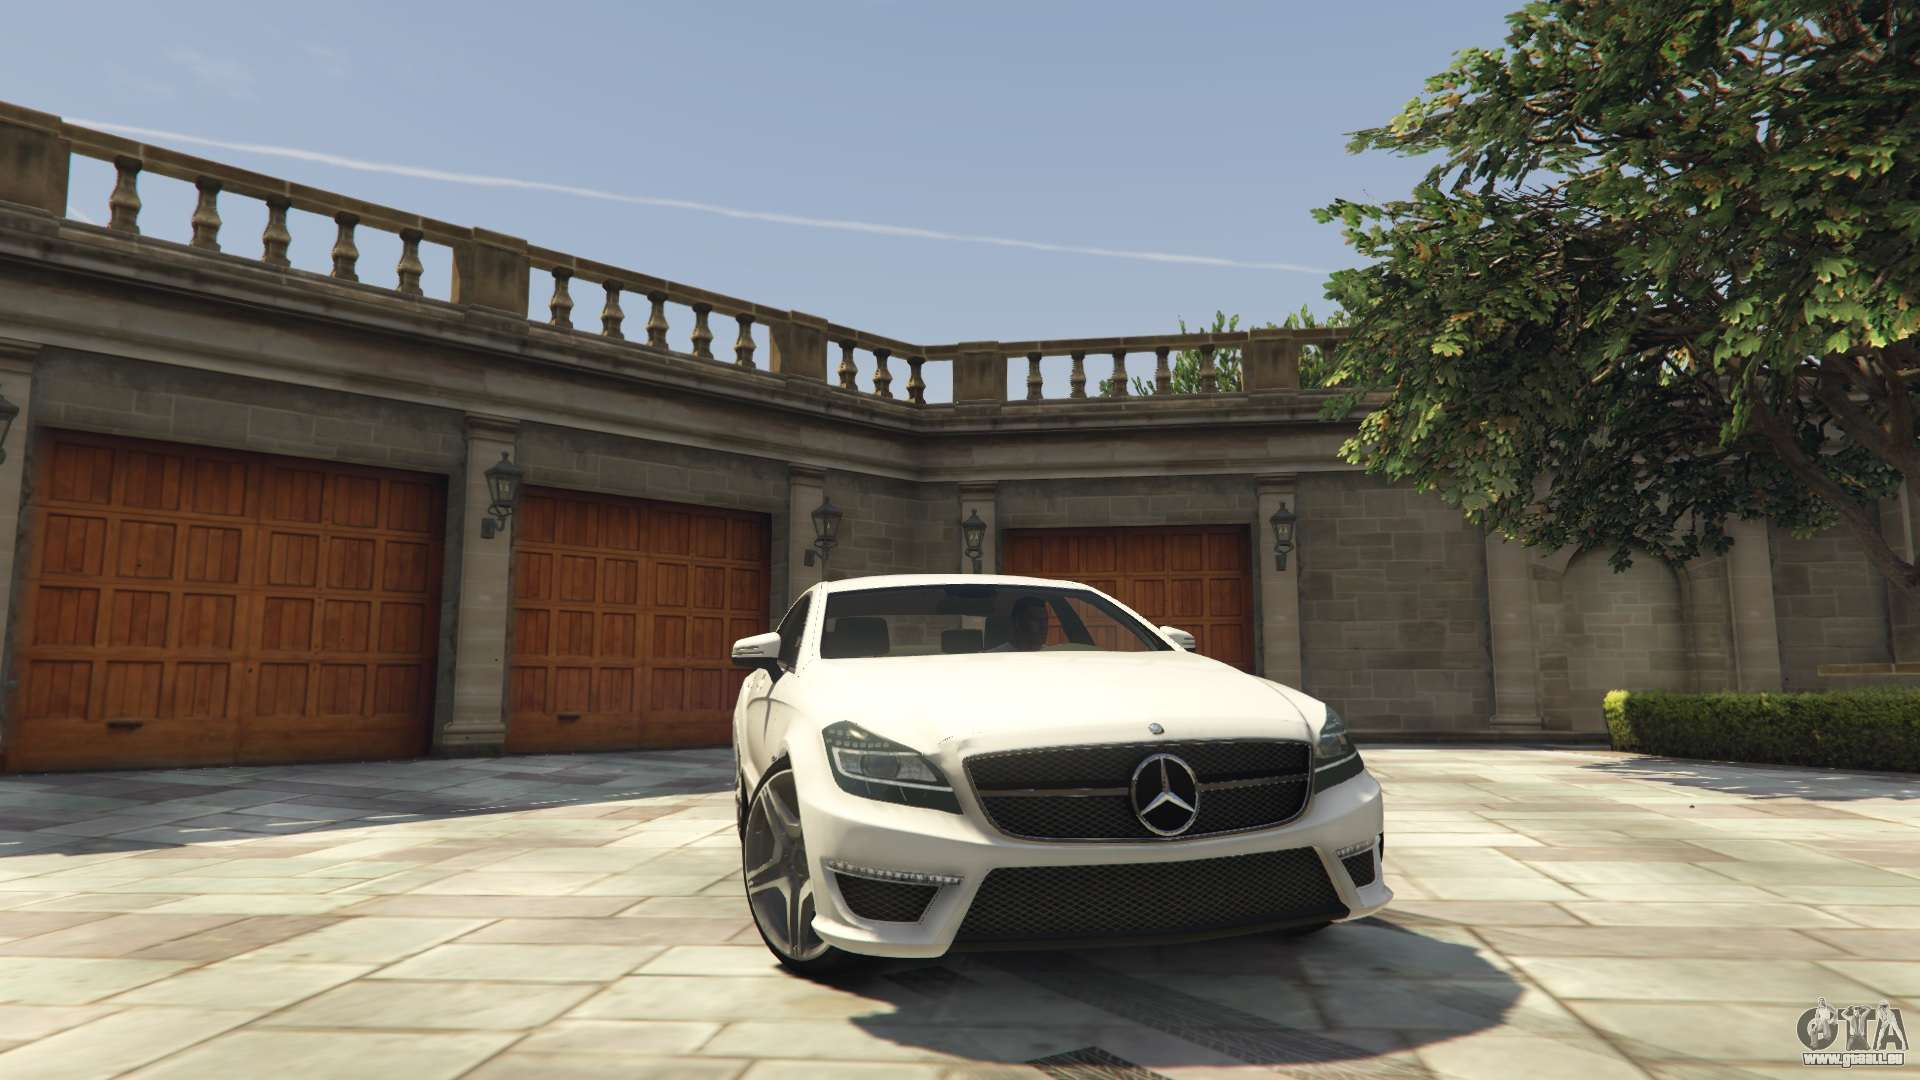 Mercedes benz cls 6 3 amg beta pour gta 5 for Mercedes benz amg 6 3